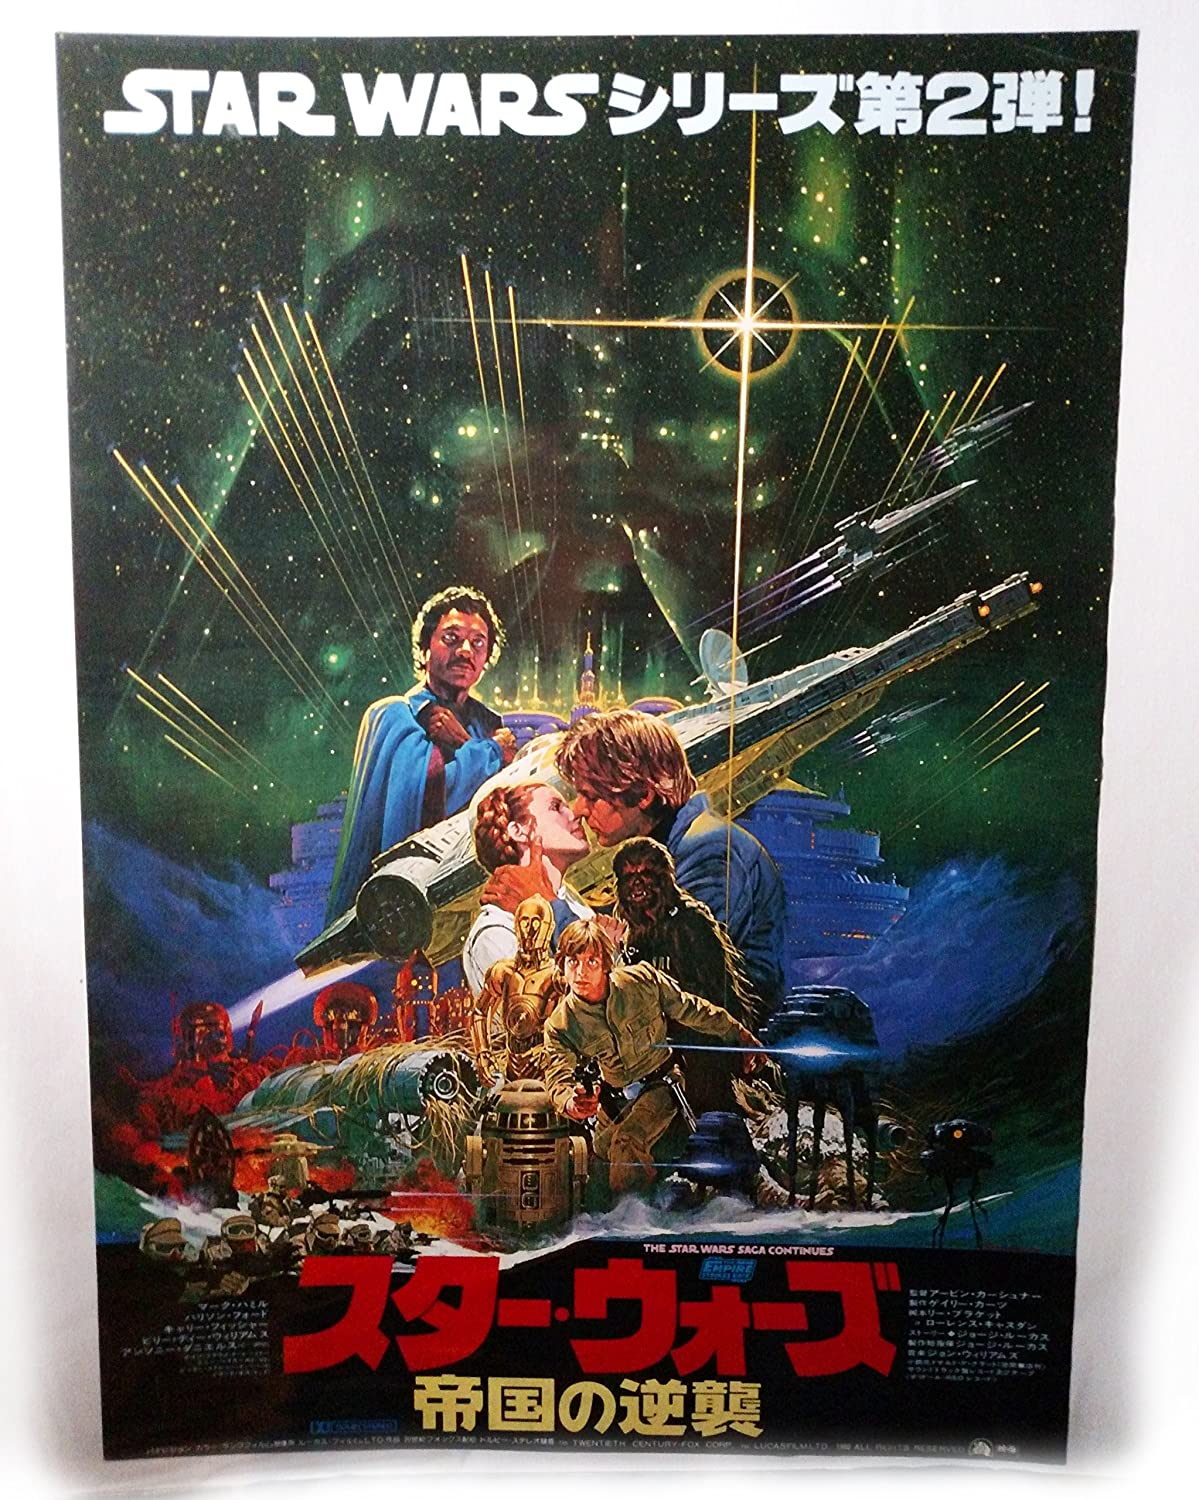 Star Wars Episode V The Empire Strikes Back Japanese Original Single Sided Rolled 20x29 Movie Poster 1980 At Amazon S Entertainment Collectibles Store